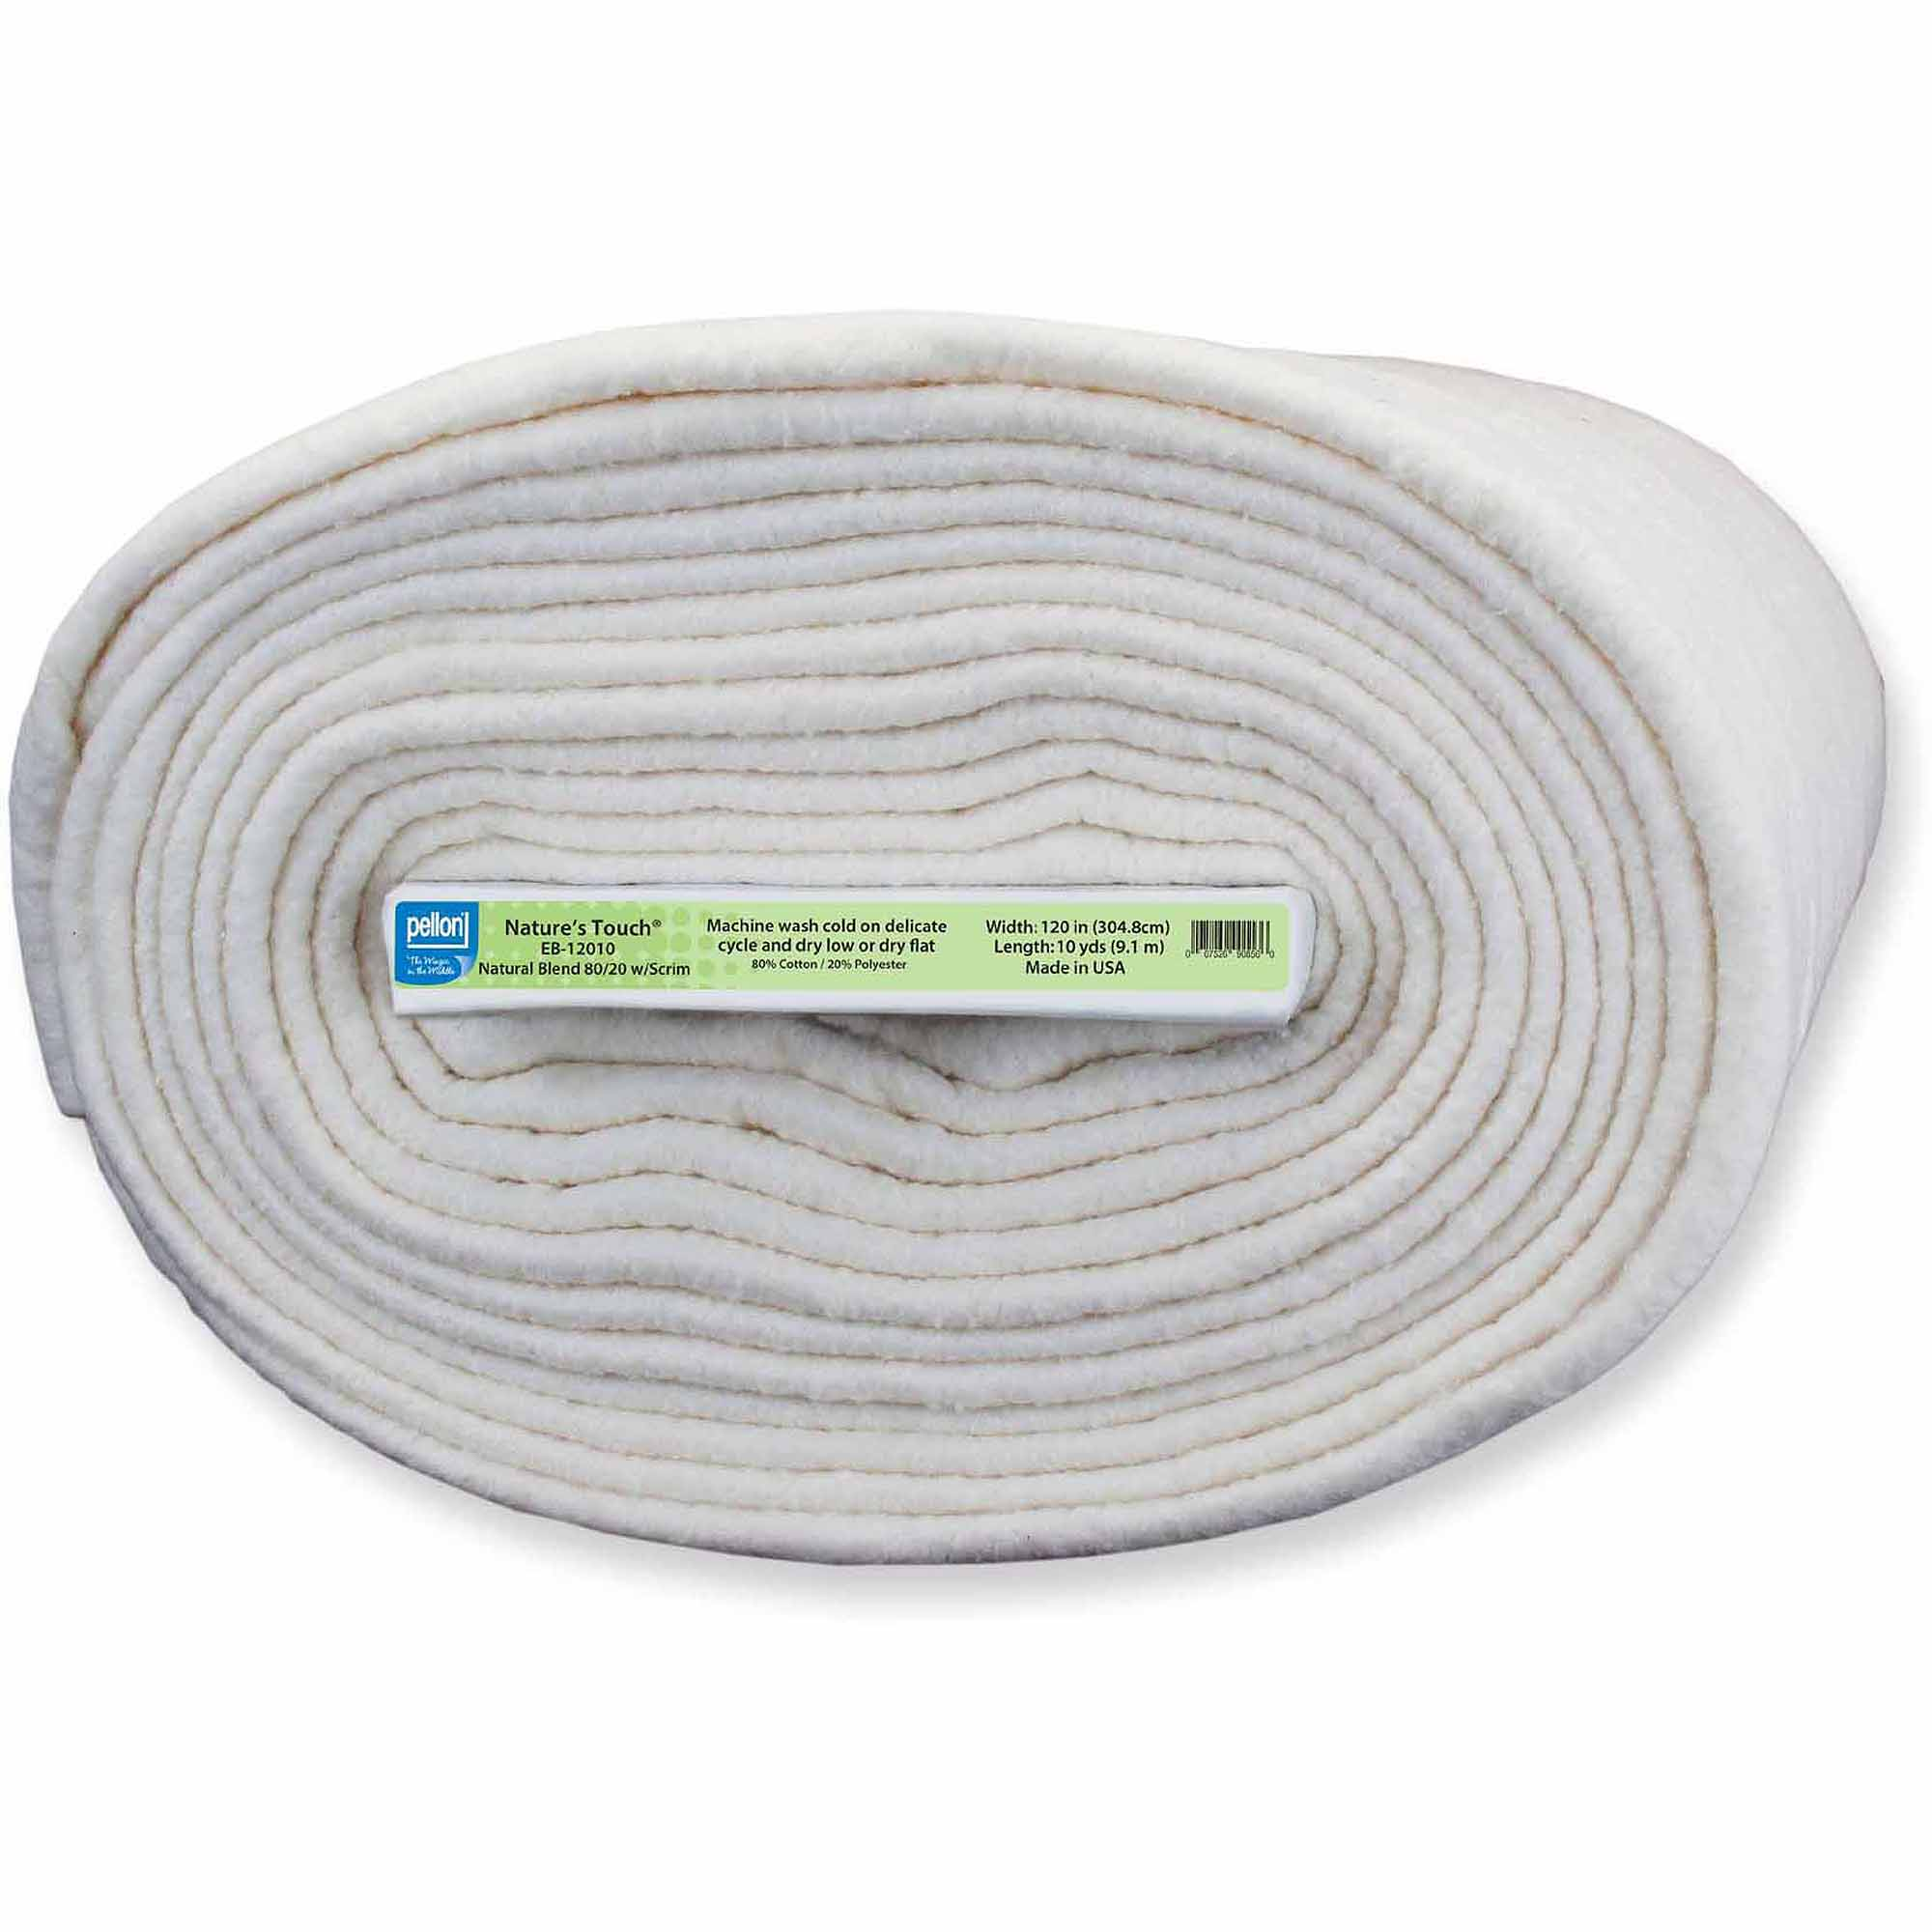 "Pellon Natures Touch Natural Blend 80/20 Batting with Scrim, 120"" Wide, 2 Size Options"